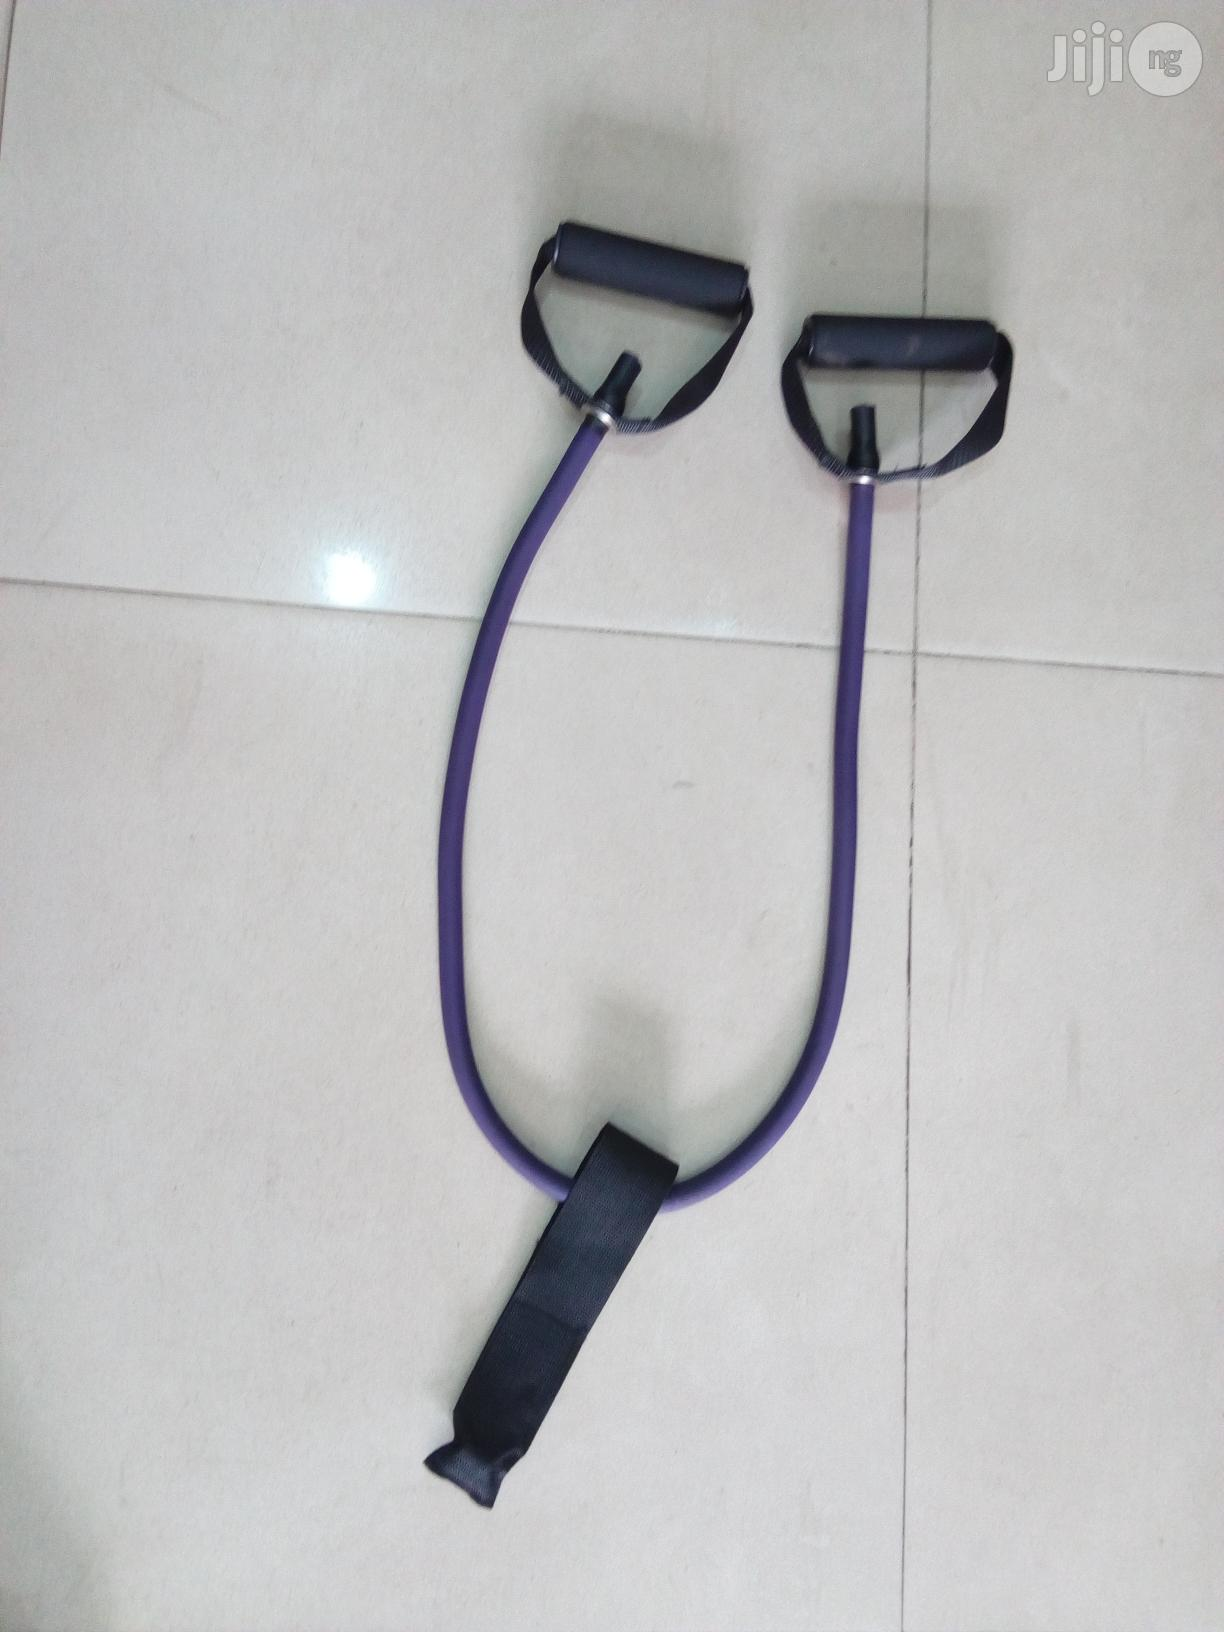 Resistance Exercise Tube | Sports Equipment for sale in Surulere, Lagos State, Nigeria